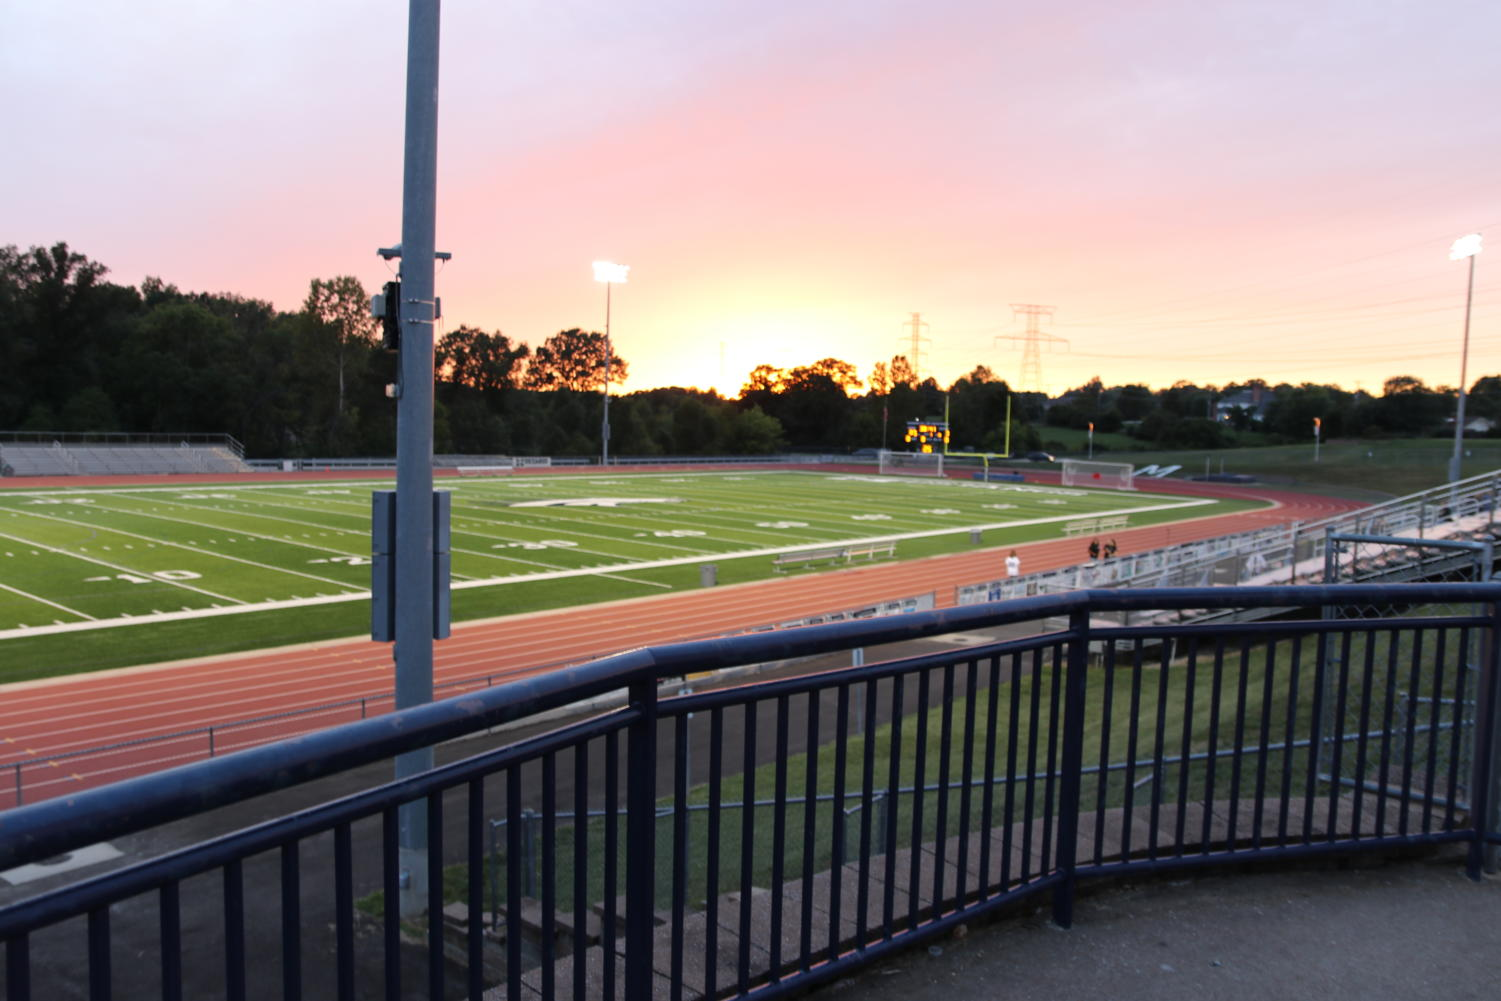 MHS' first home game of the school year is scheduled for 8 p.m. tonight against Parkway North after rain postponed the original start time. Increased security personnel and staff will monitor the field and the parking lot.